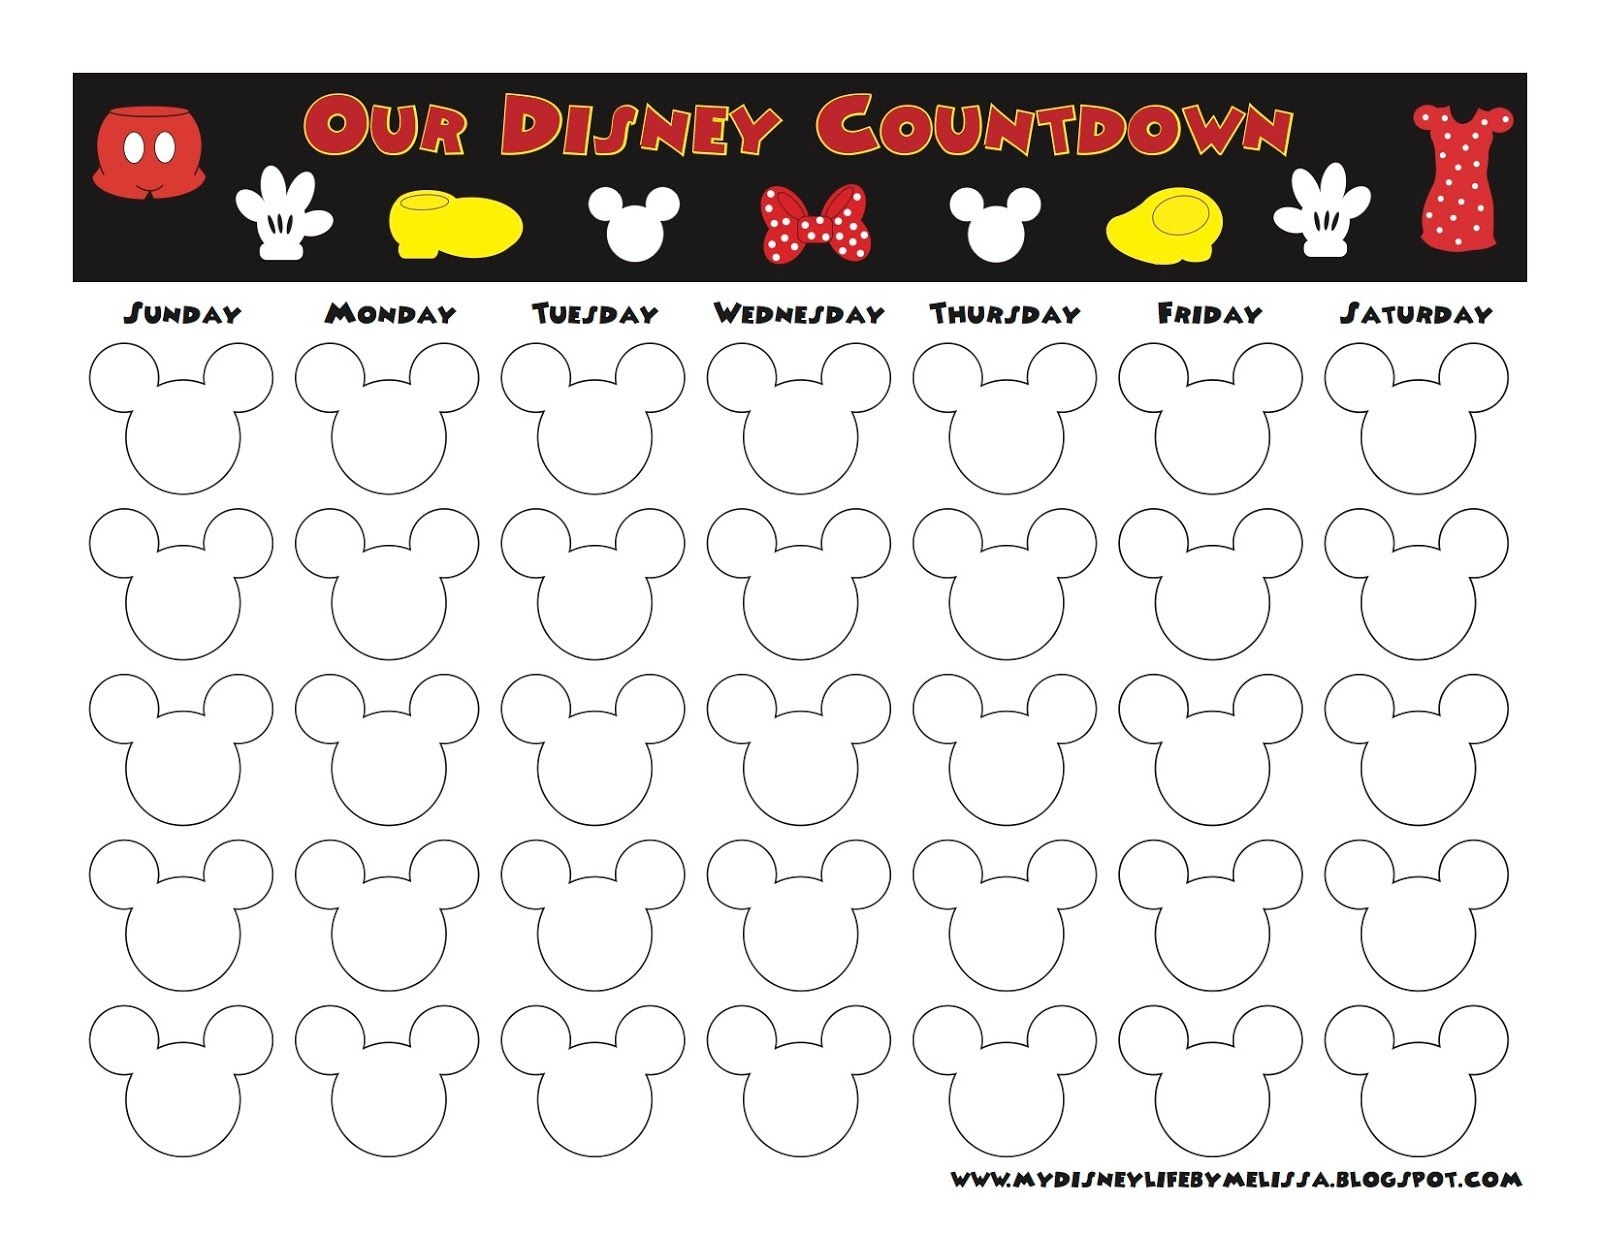 My Disney Life: Countdown Calendars